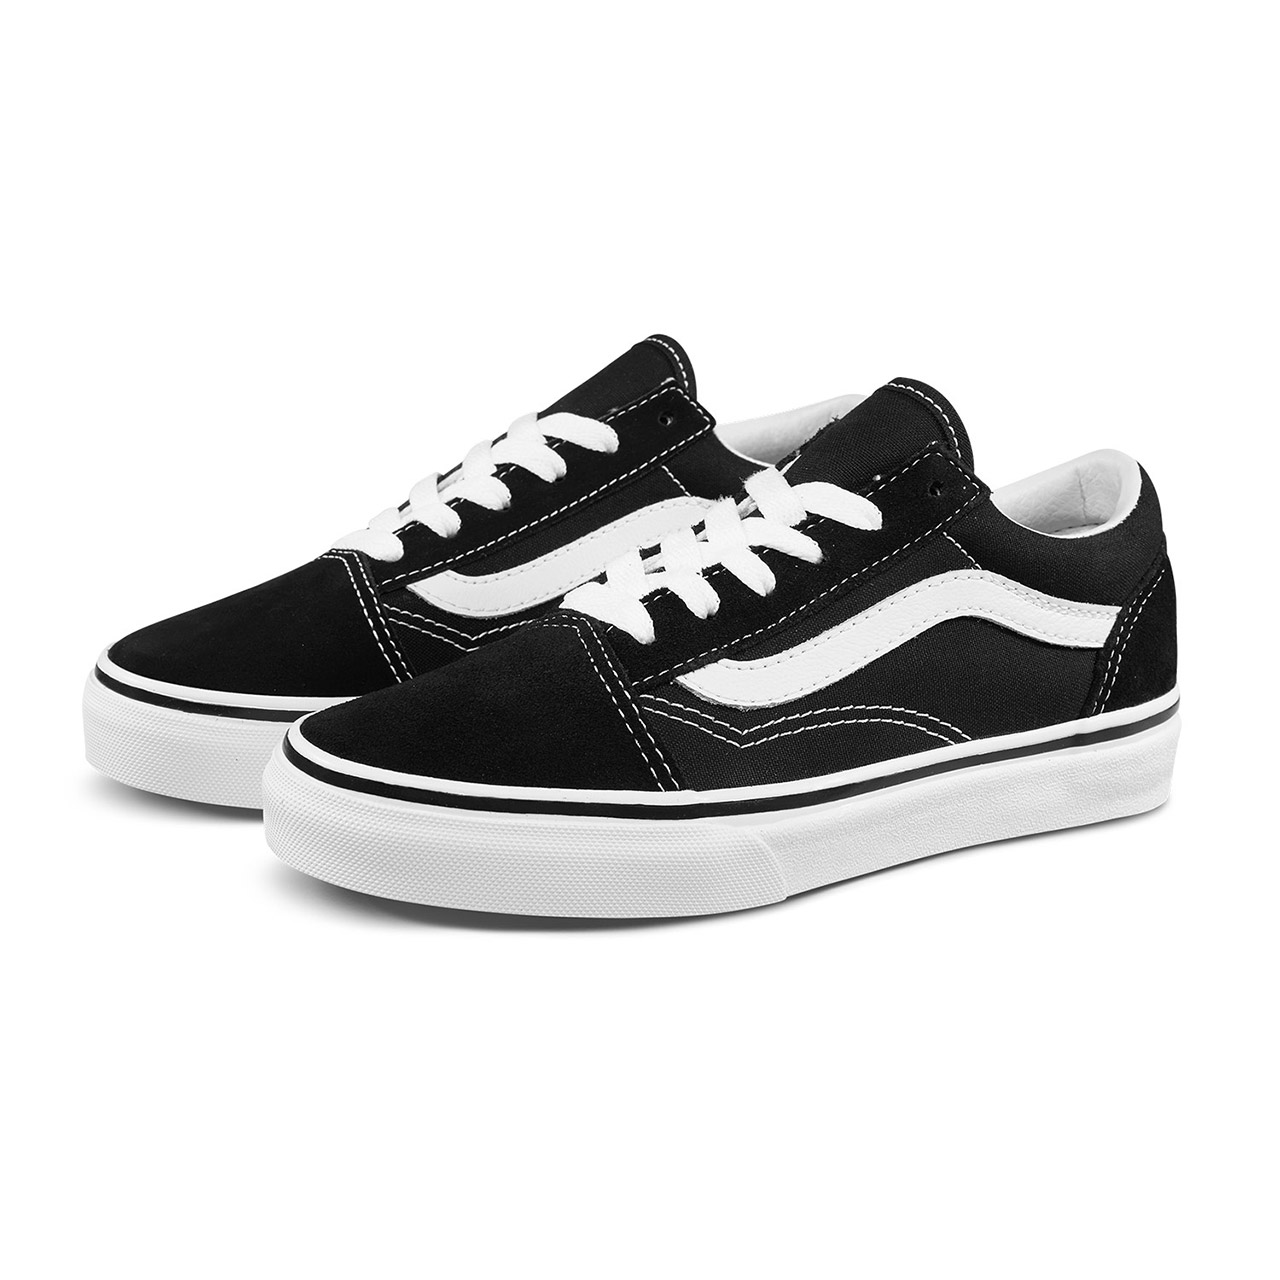 Vans children's shoes - old skool Board Shoes - Classic low top official authentic for boys and girls